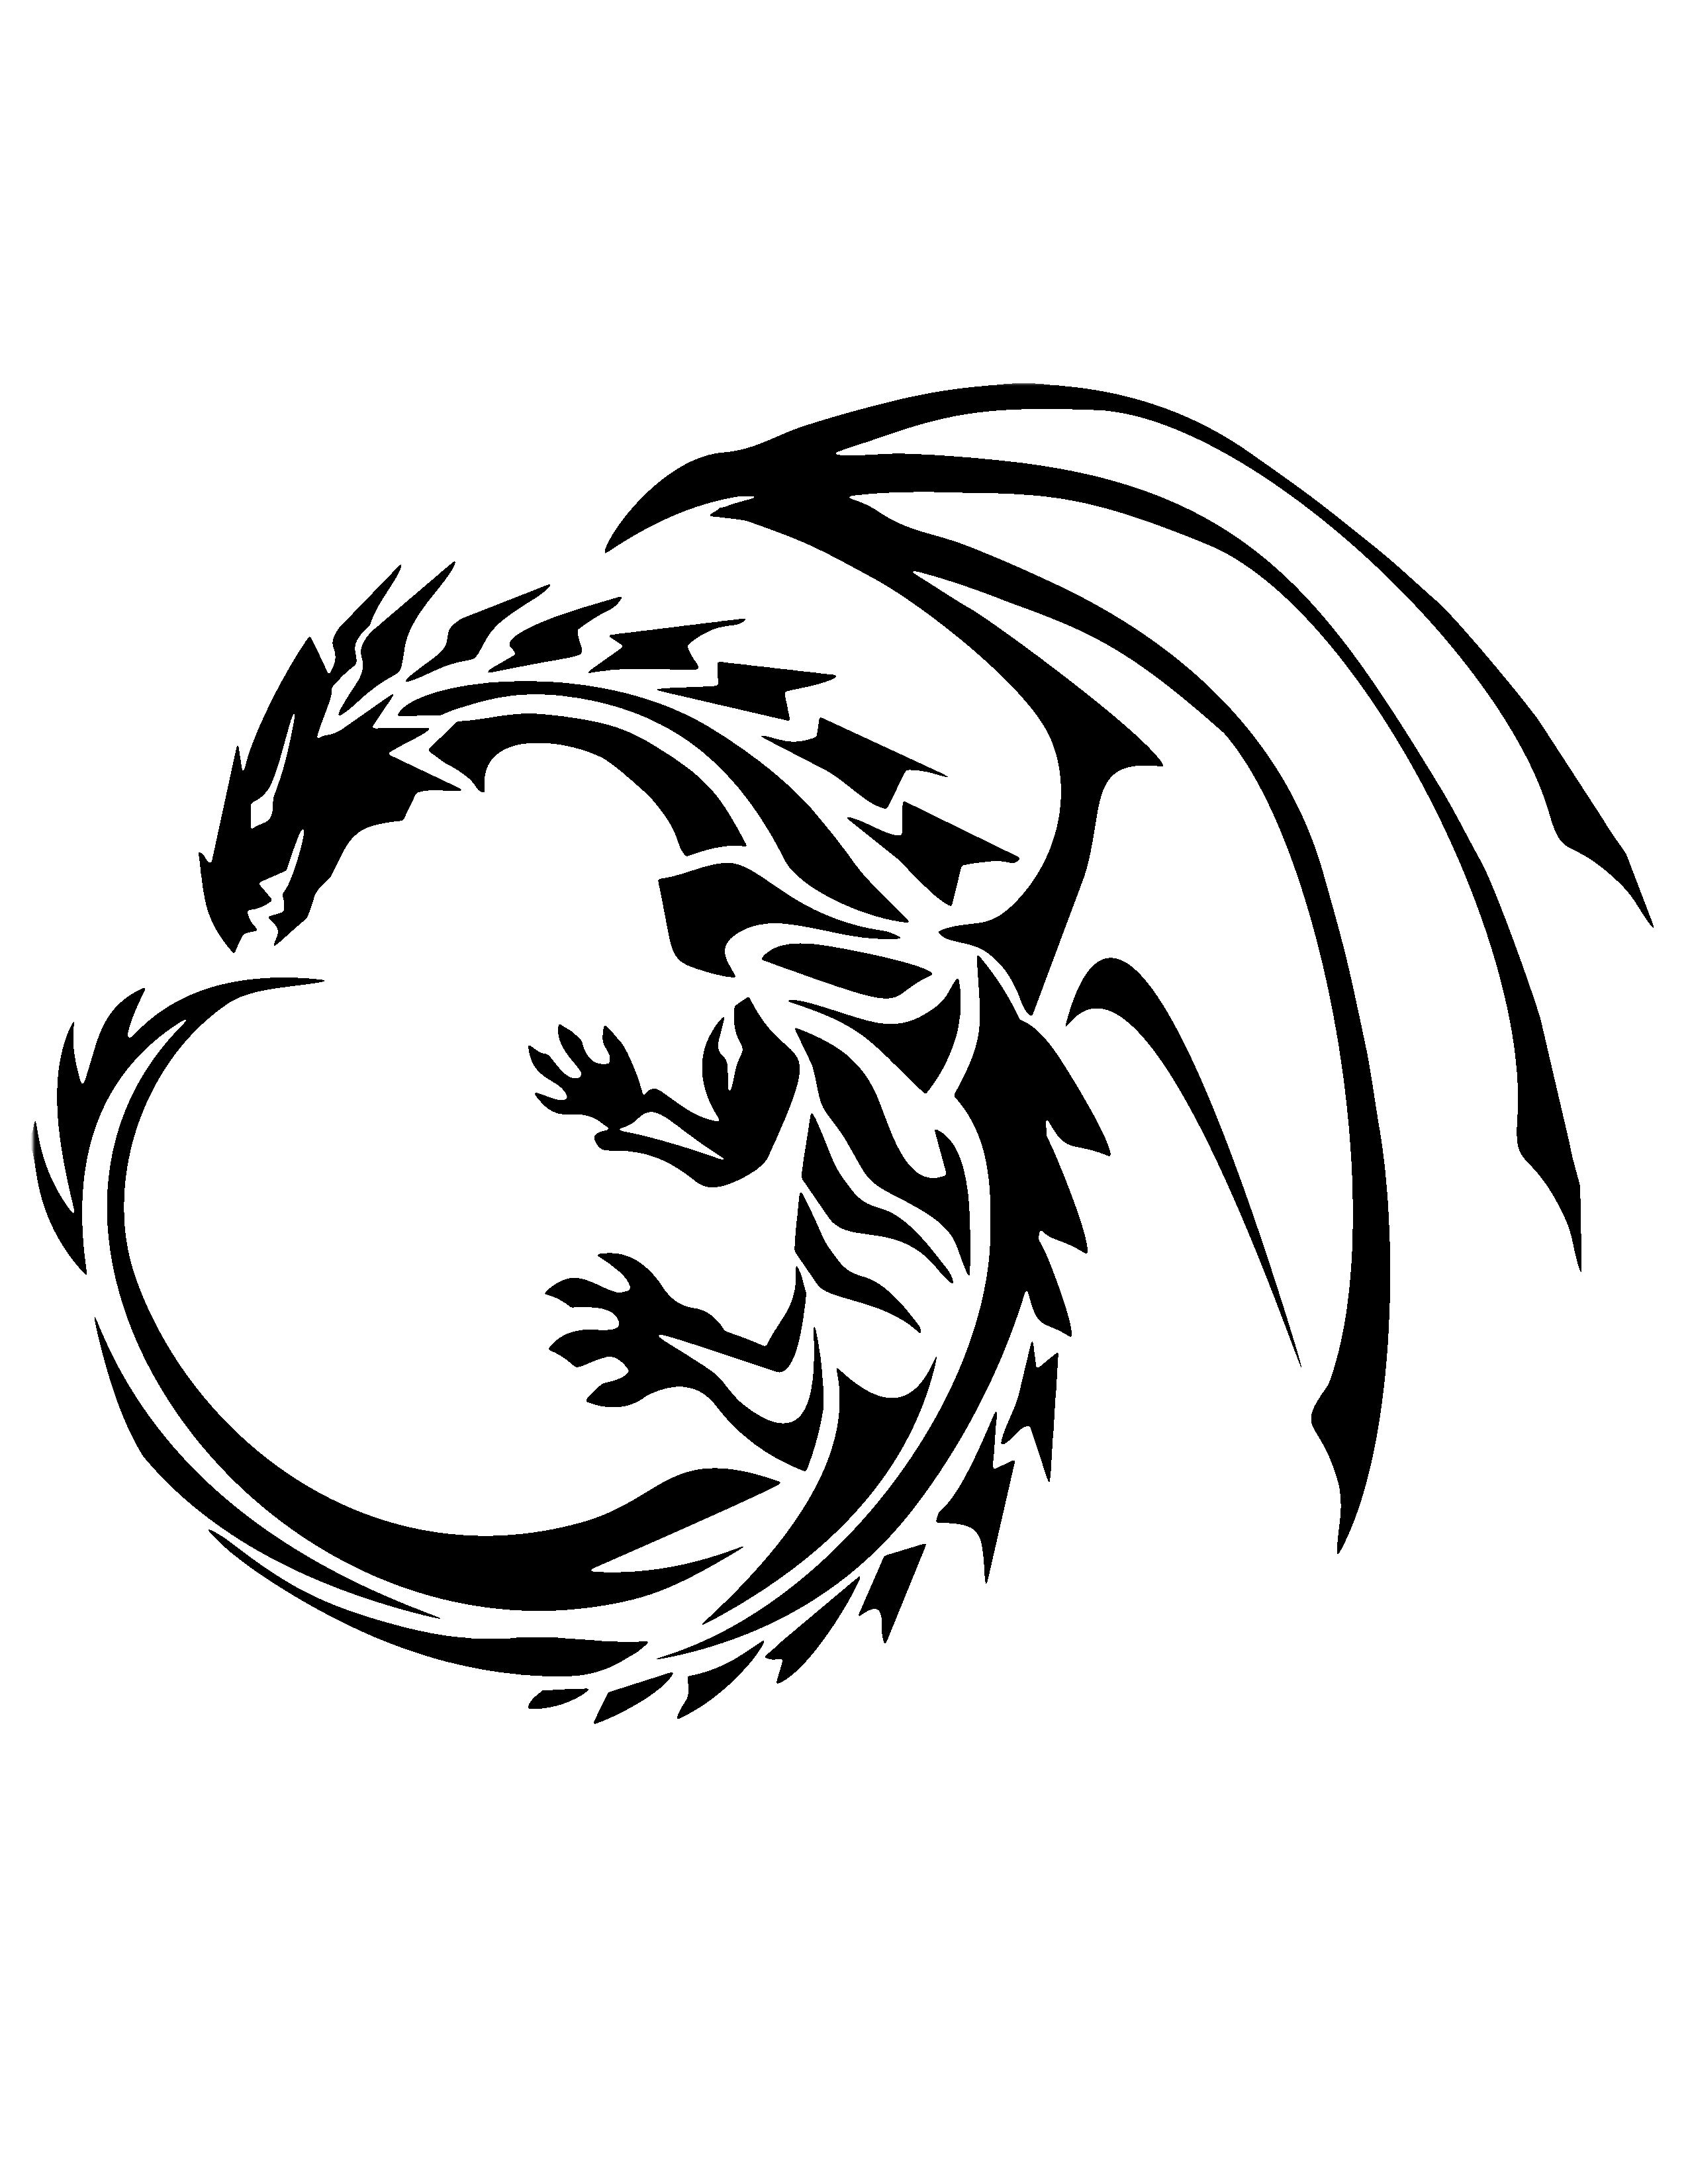 Dragon Stencil | Stencils | Tribal Dragon Tattoos, Chinese Dragon - Free Printable Dragon Stencils